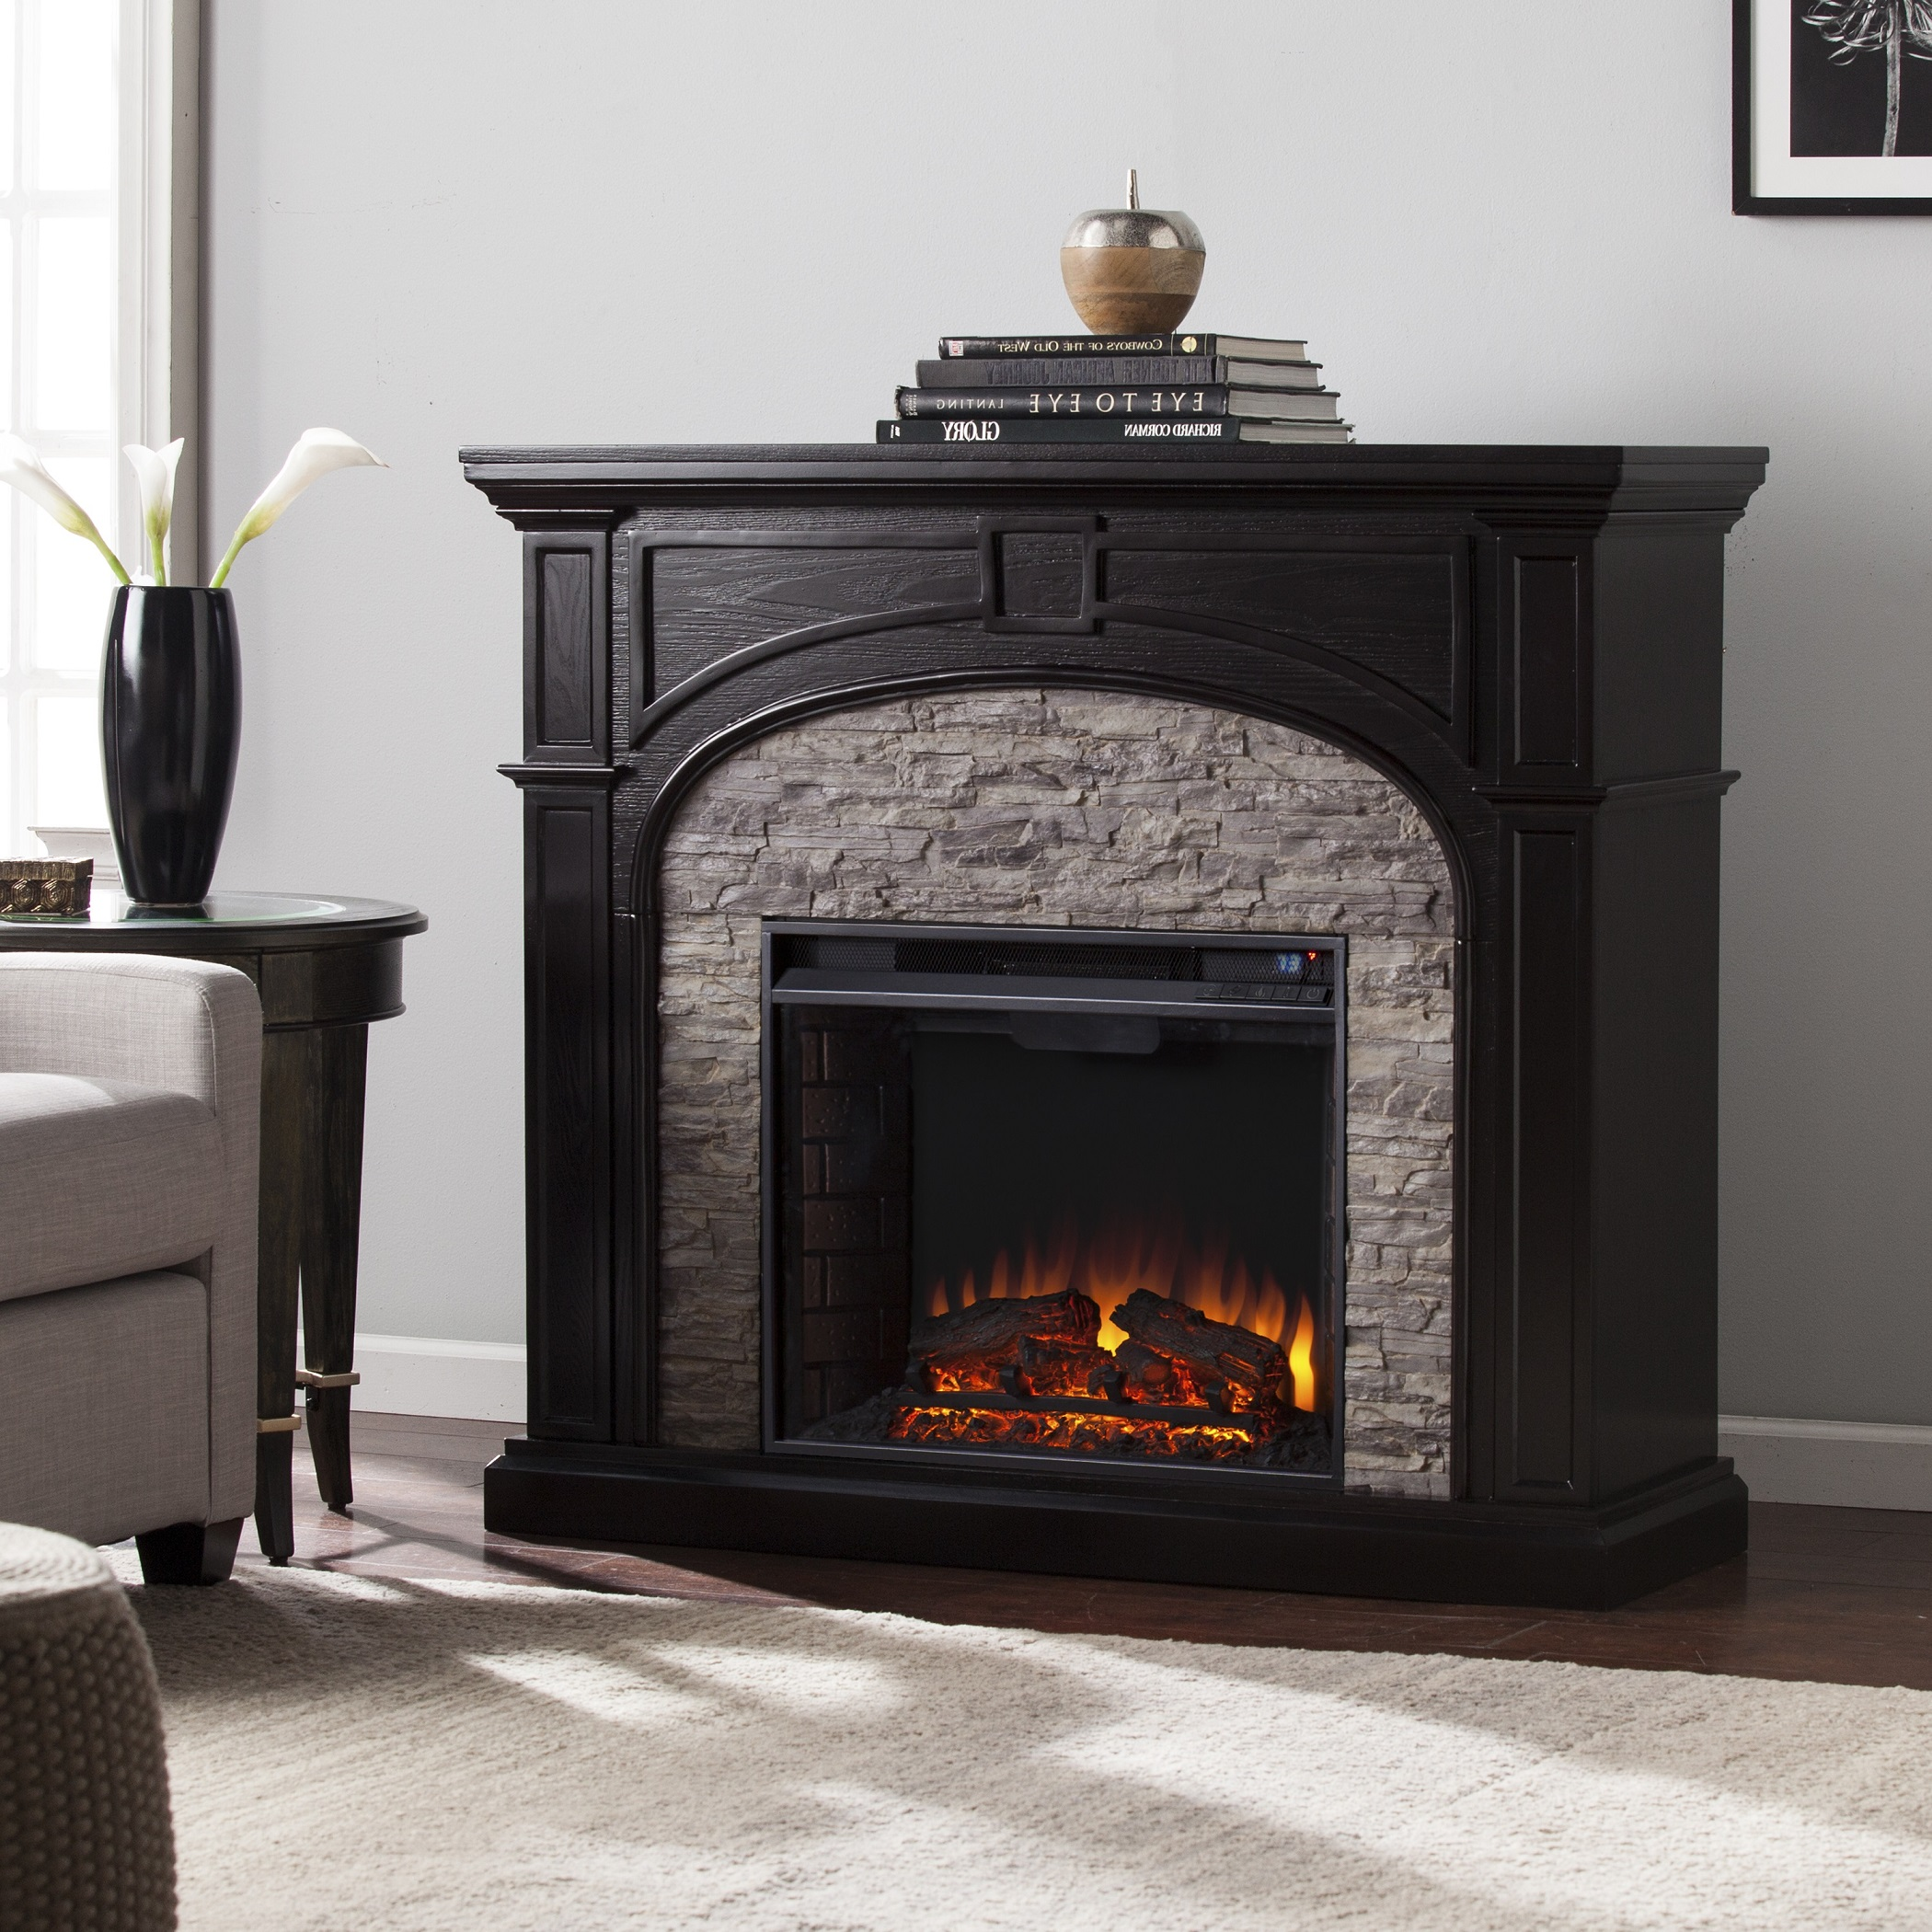 Ignite your senses with this updated lodge style electric fireplace. Rich ebony finish arches over the realistic gray faux stone surround.